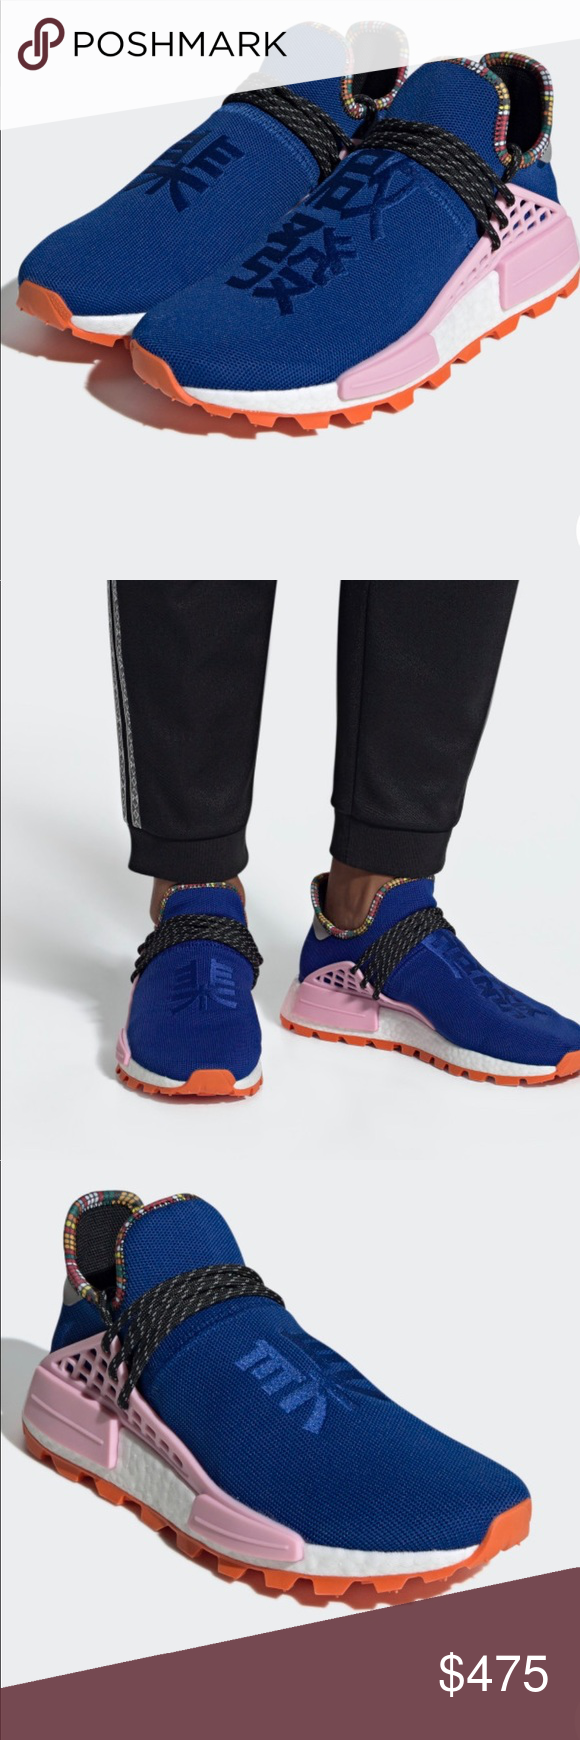 4706282fc Adidas Pharrell Williams Solar HU Adidas Human Race NMD Solar Hu Pharrell  Williams Inspiration Pack Powder Blue Just released new in box  men s size  8.5 and ...